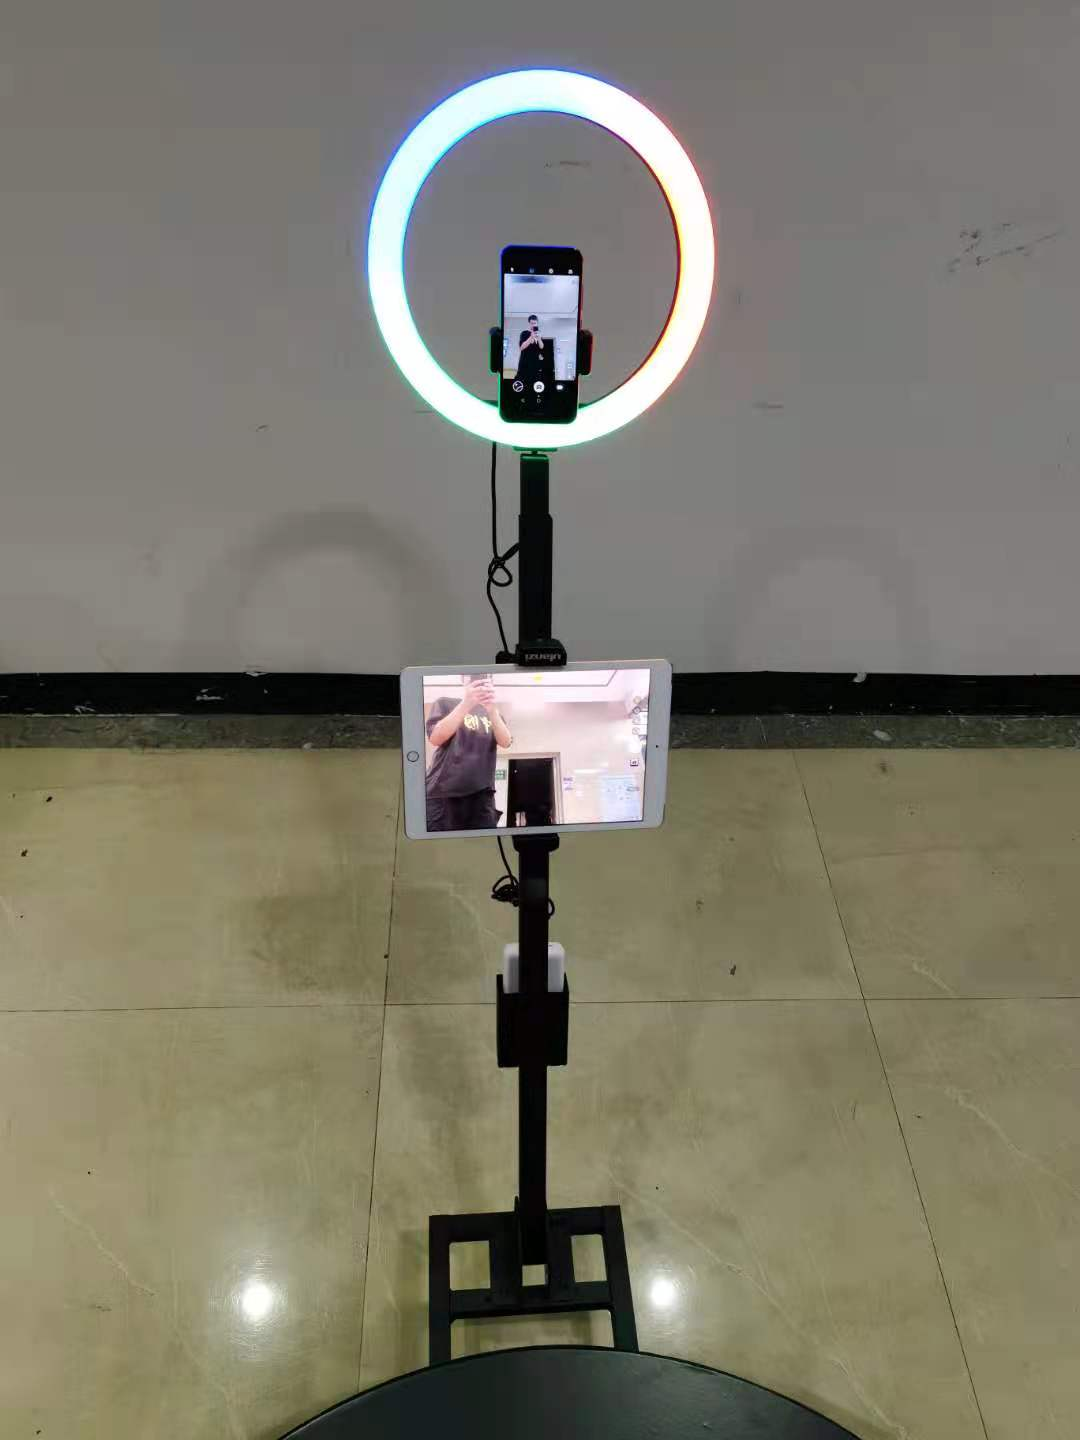 Slow Motion magic Portable vertical LED iPad photo booth 360 Degree Spin Camera Photo Booth 360 Selfie Platform Photobooth